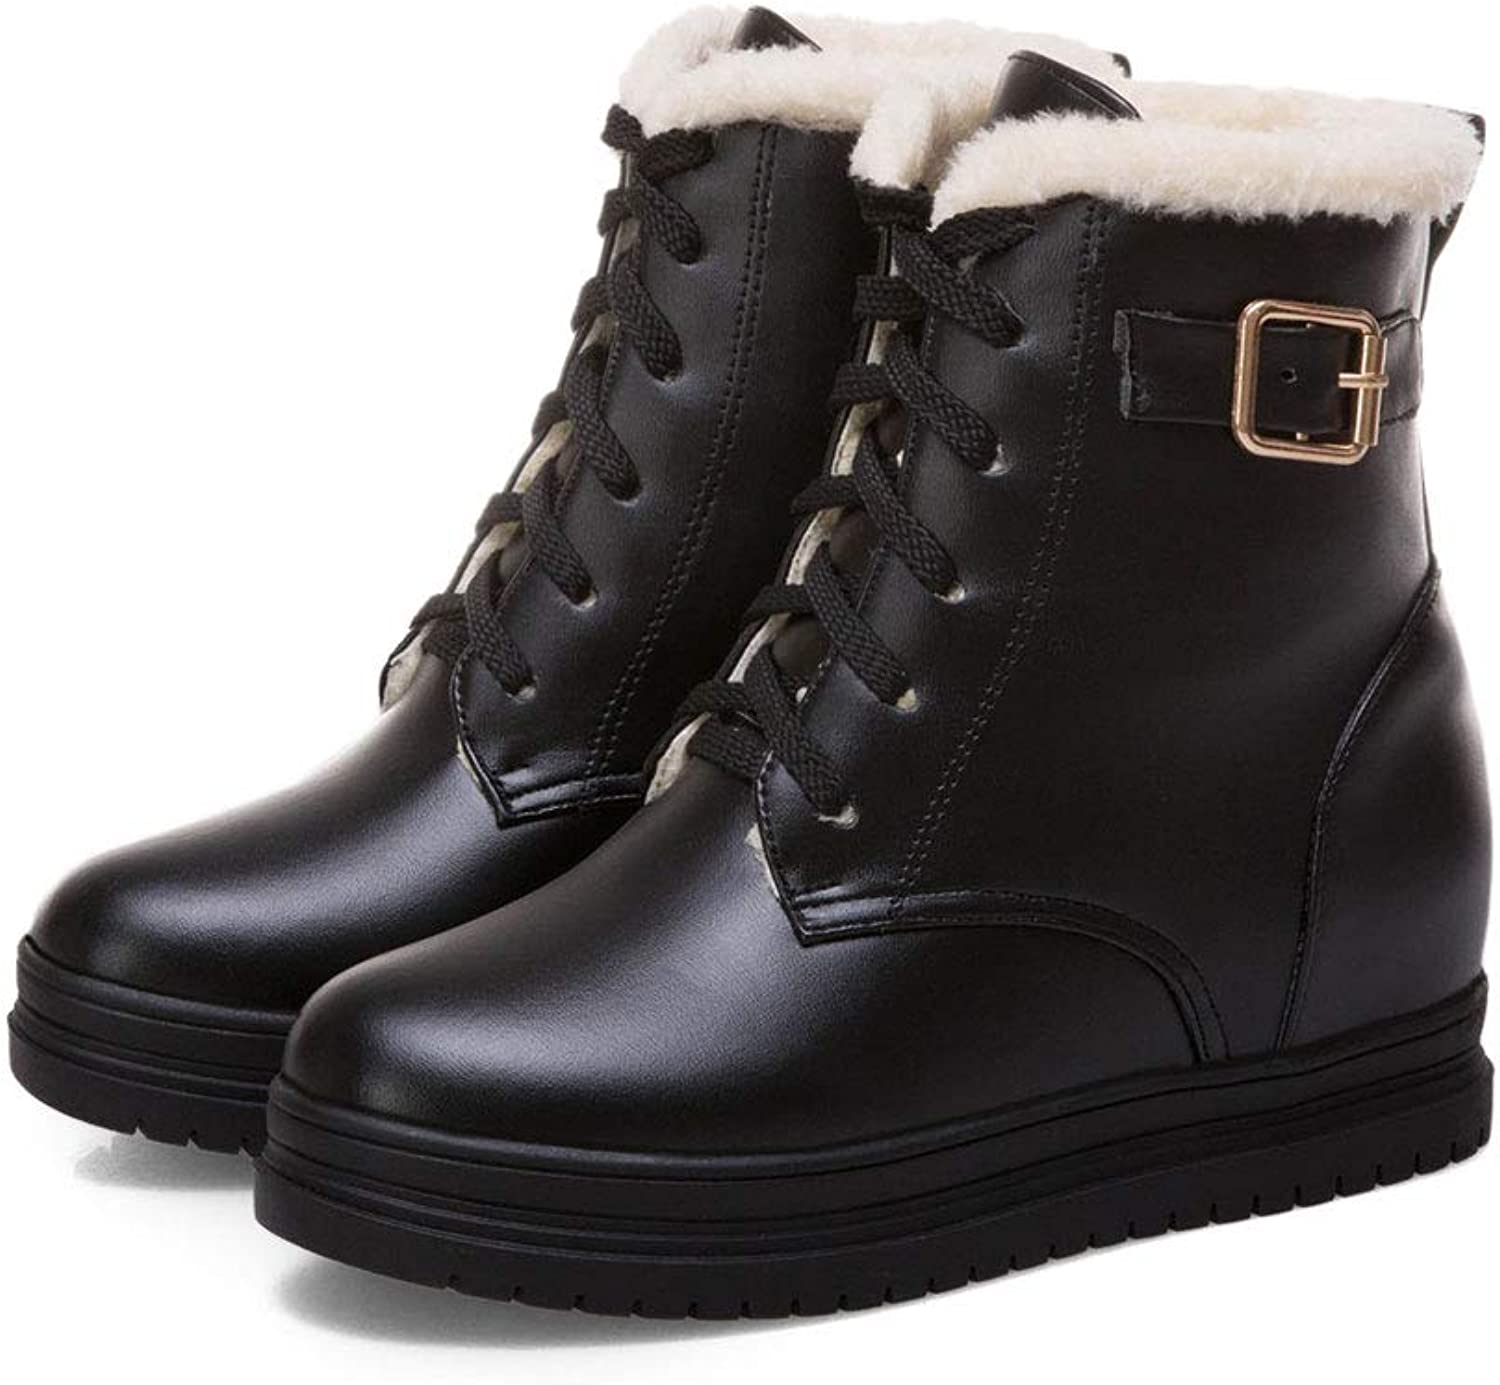 Casual Snow Boots, Plus Velvet Thick Low-Cut Ankle Boots Lacing Round Head Martin Boots Waterproof Platform Flat Short Boots Women's Cotton shoes